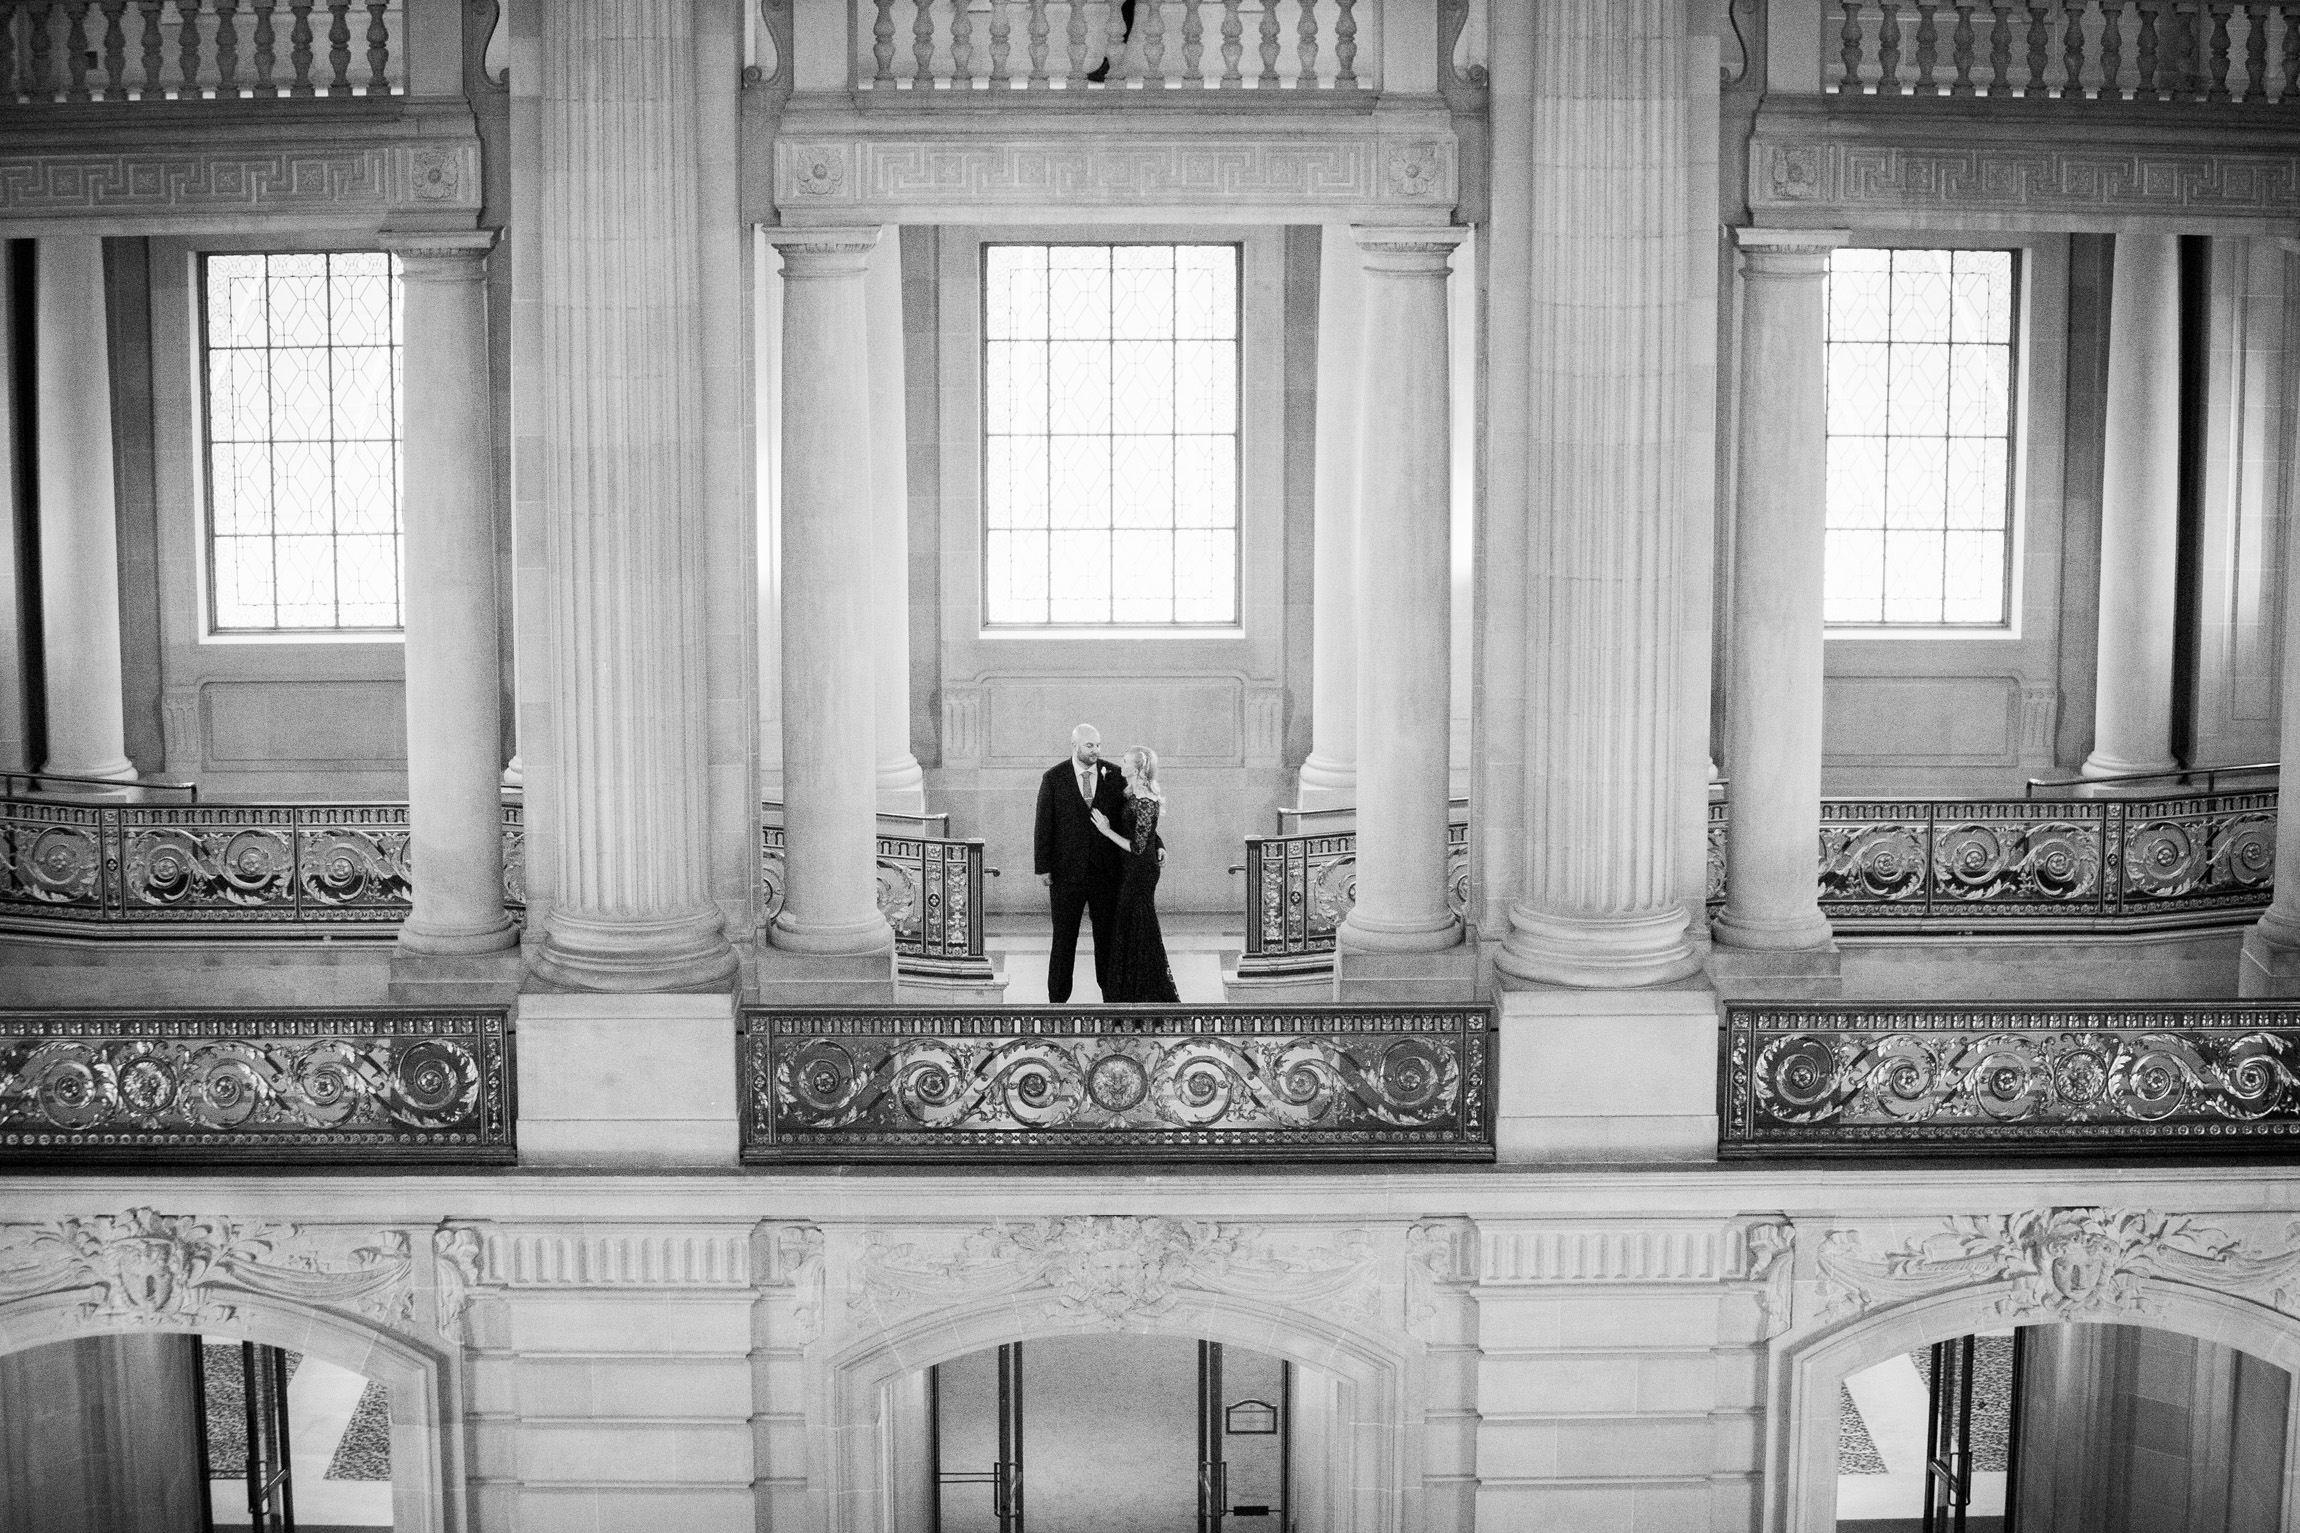 045_janaeshieldsphotography_sanfrancisco_cityhall_weddings.jpg